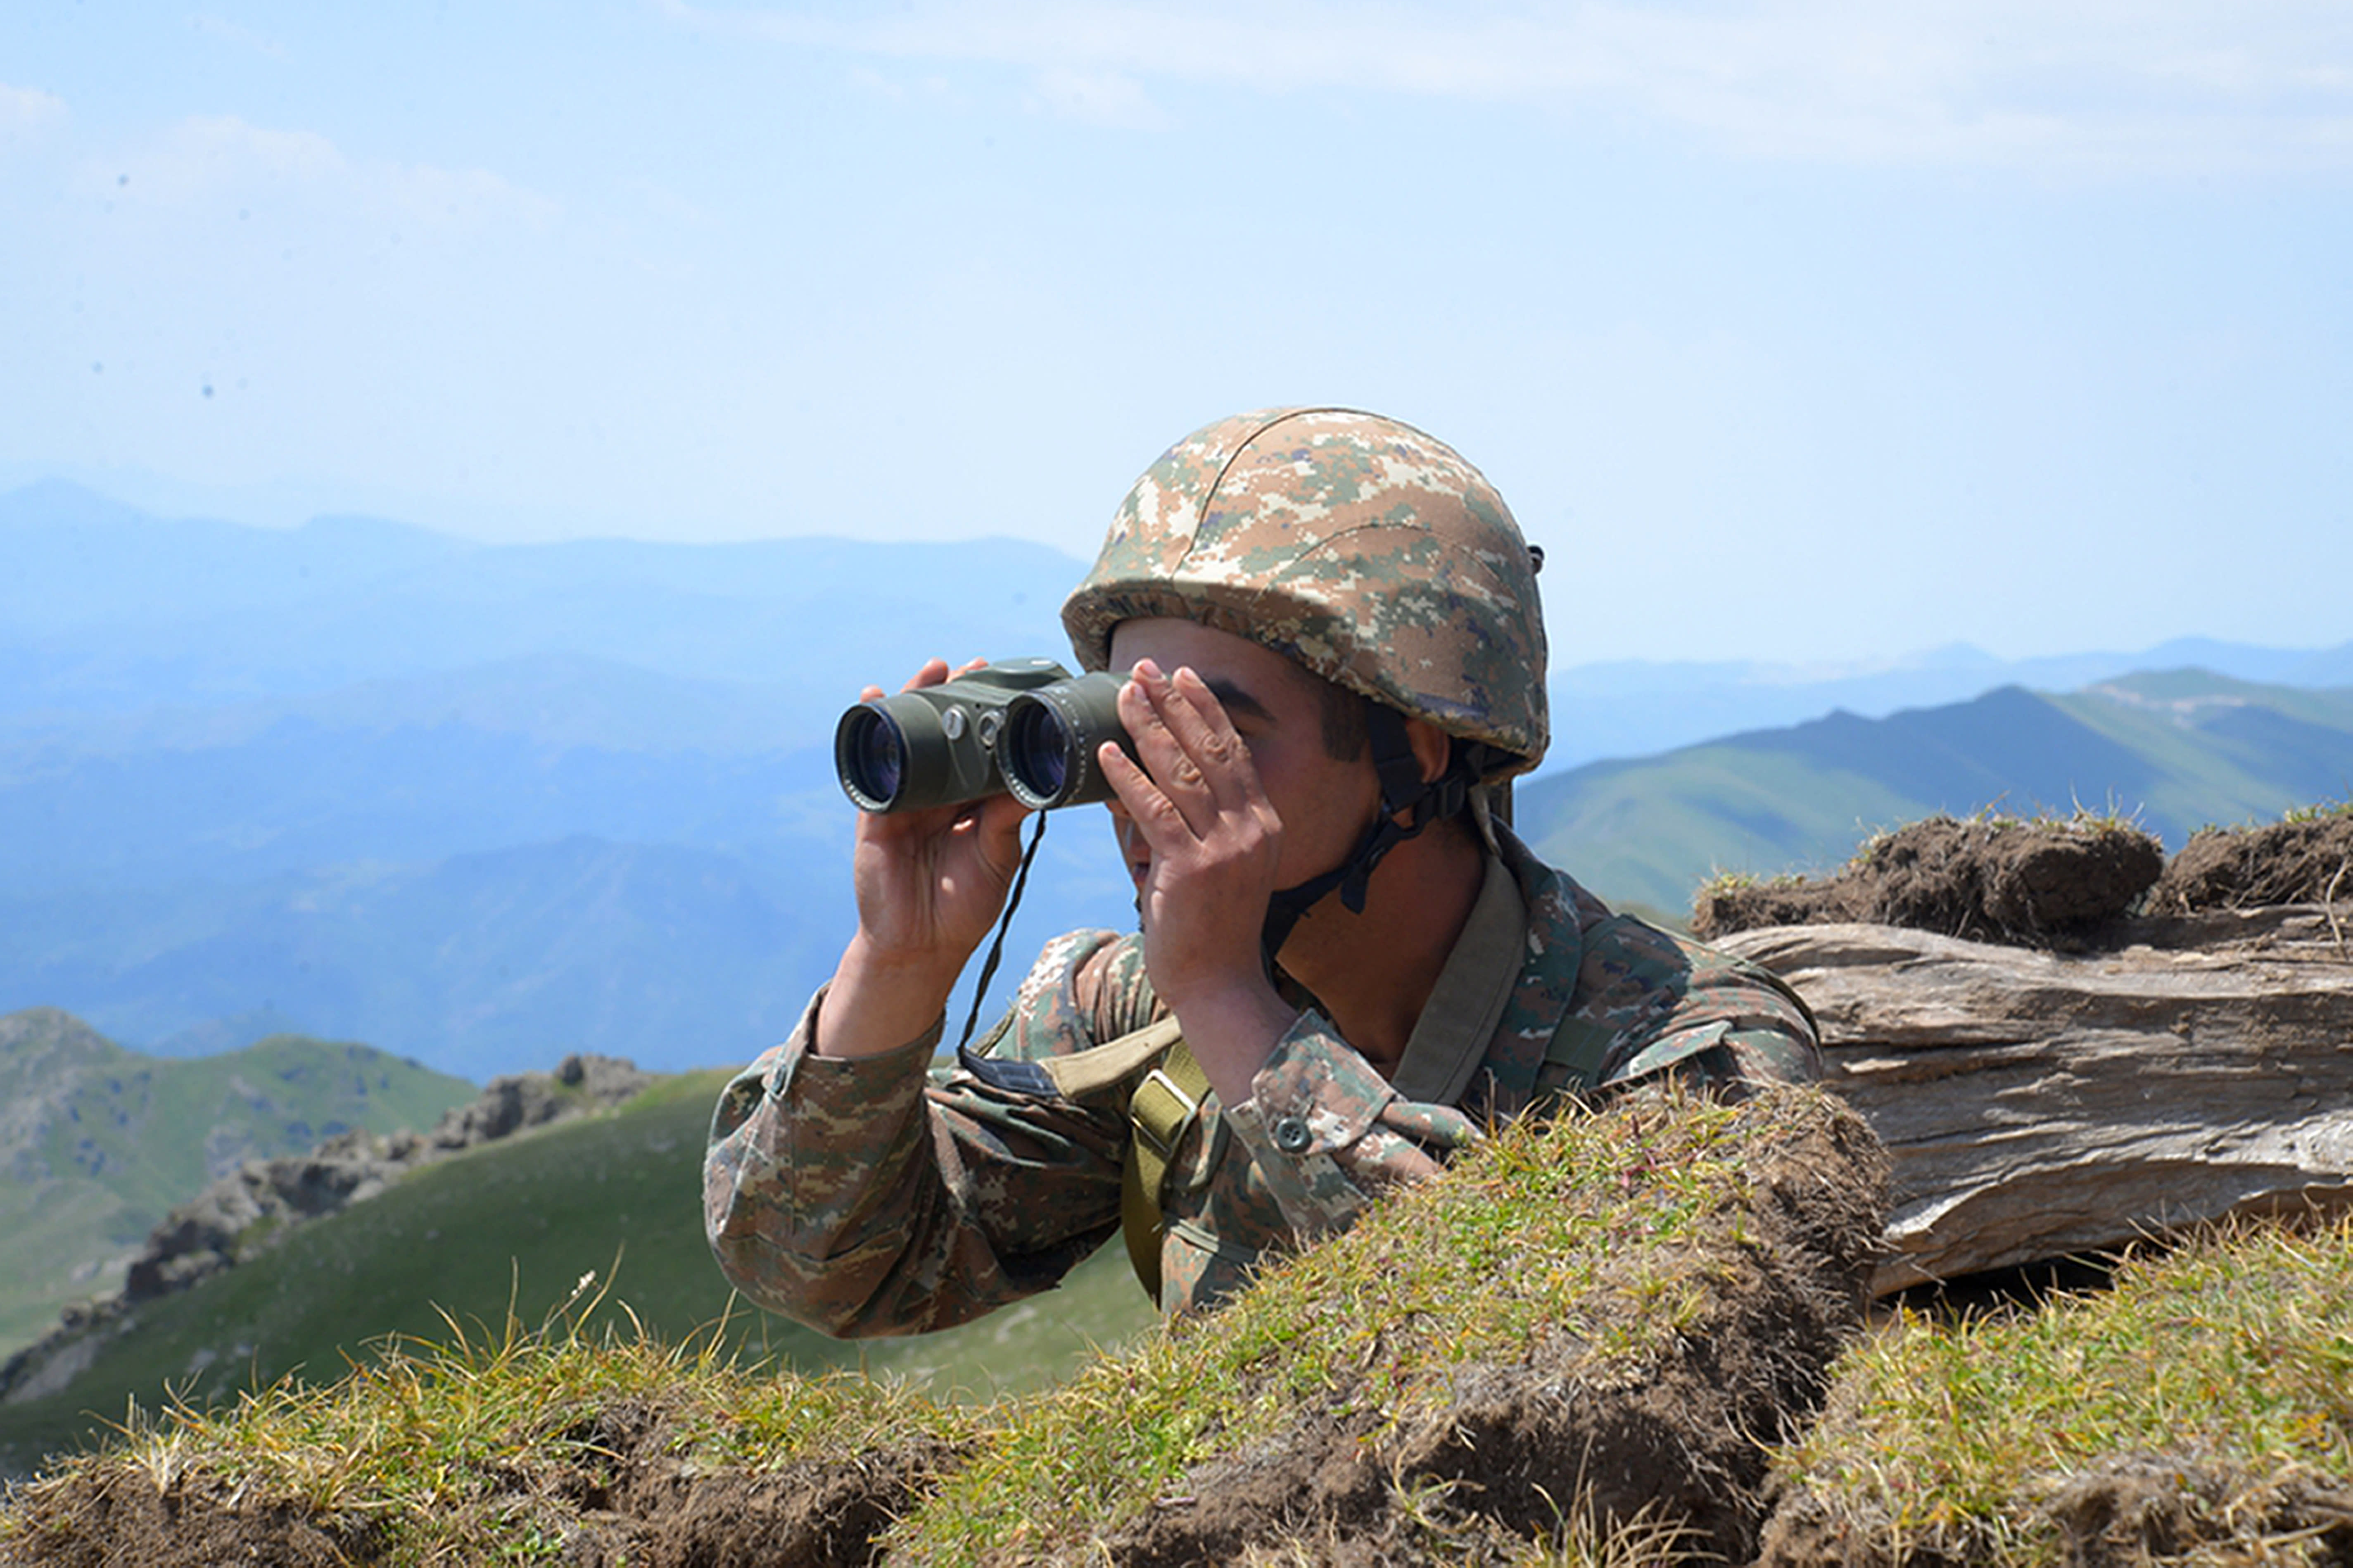 An Armenian soldier looks through a binocular at his position on the front line in Tavush region, Armenia, Tuesday, July 14, 2020. Skirmishes on the volatile Armenia-Azerbaijan border escalated Tuesday, marking the most serious outbreak of hostilities between the neighbors since the fighting in 2016. (Armenian Defense Ministry Press Service/PanPhoto via AP)